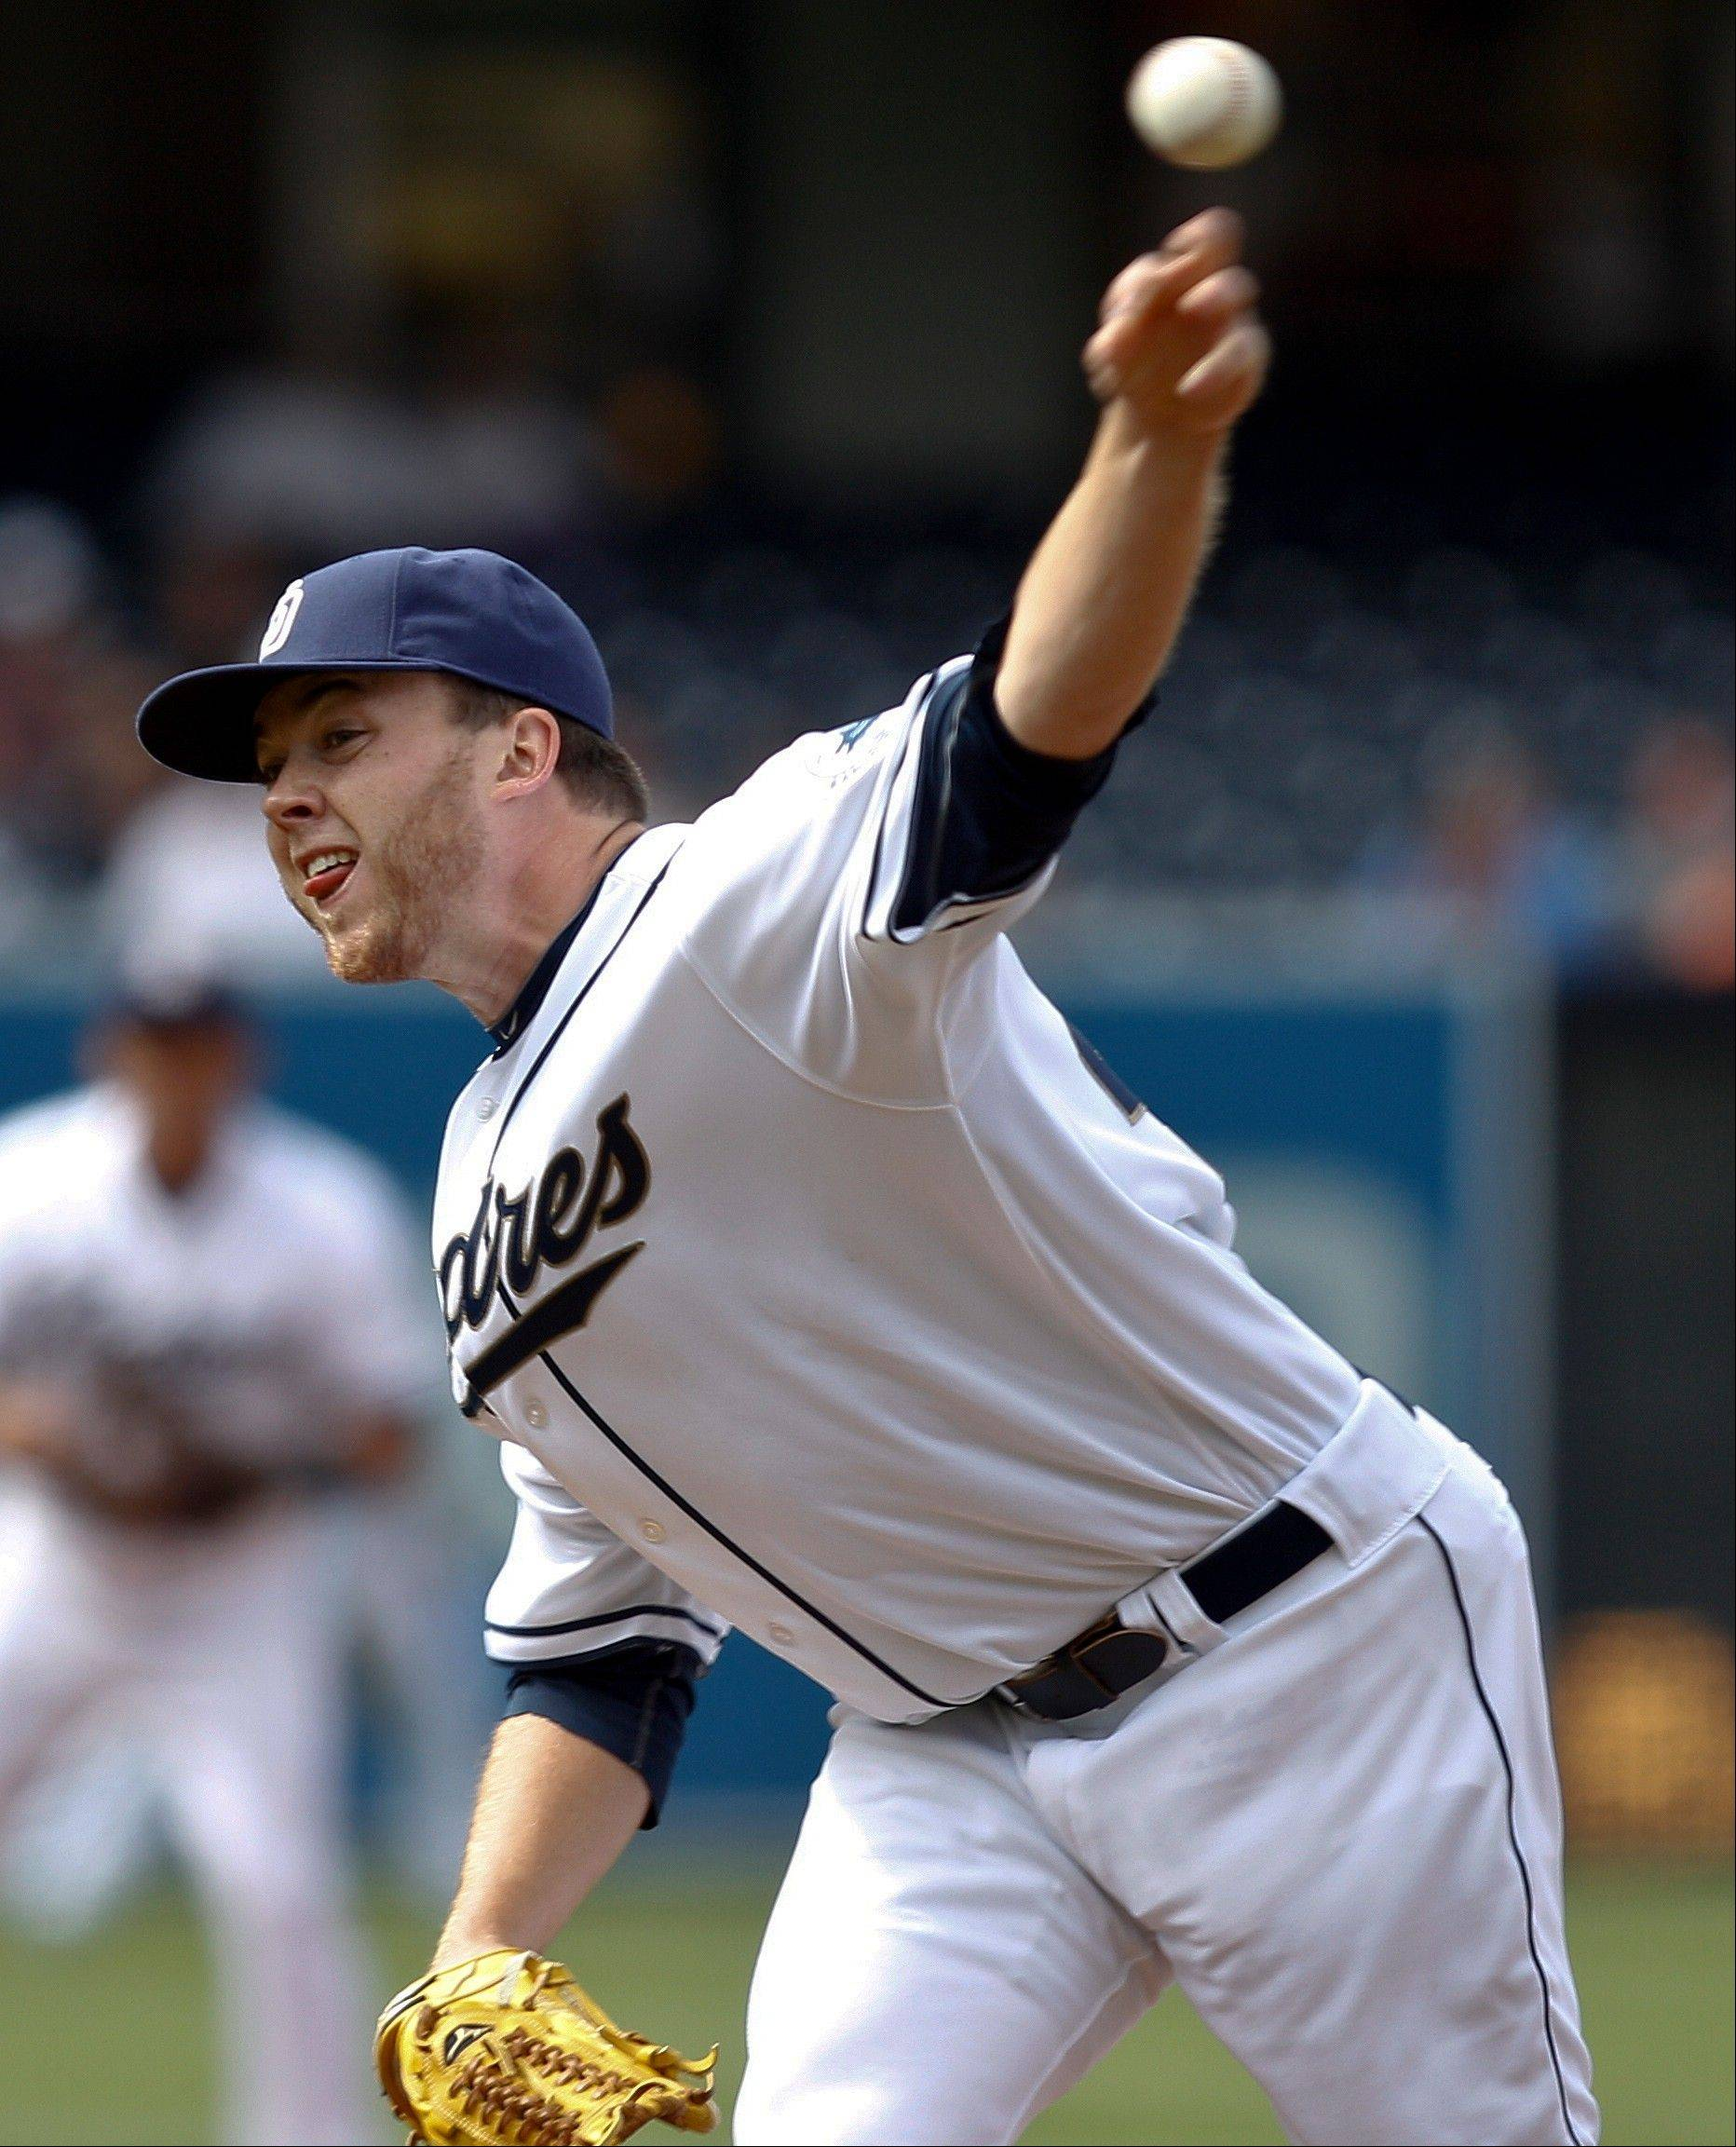 San Diego Padres starter Andrew Werner, making his major league debut, allowed four hits, walked four and struck out two Wednesday at home against Pittsburgh.